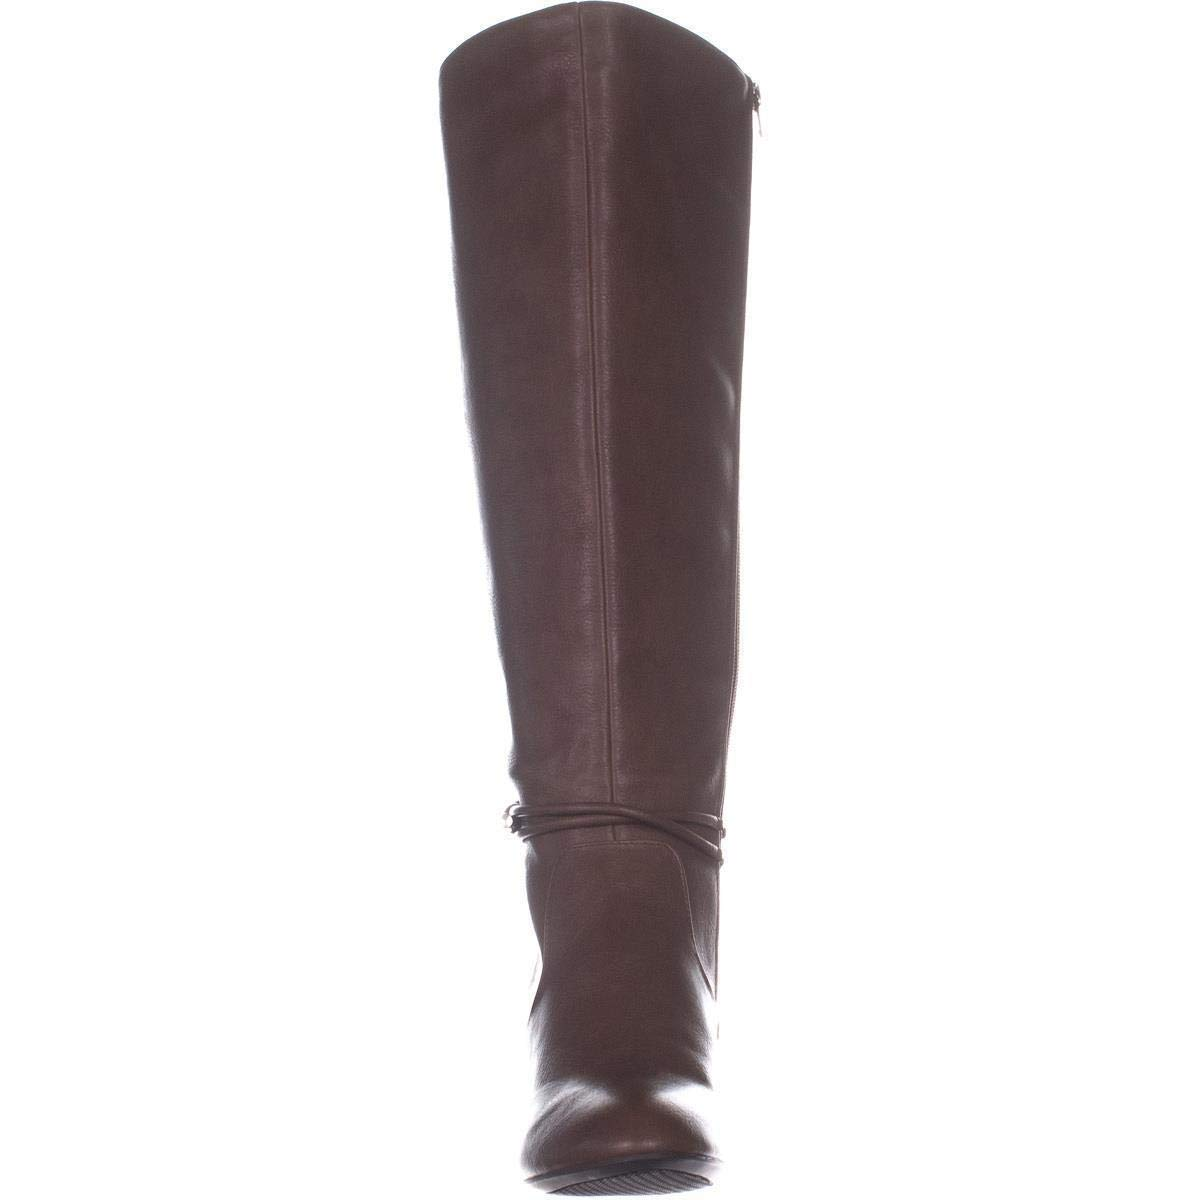 Alfani Womens giliann Closed Toe Knee High Fashion Boots Size 11.0 congac